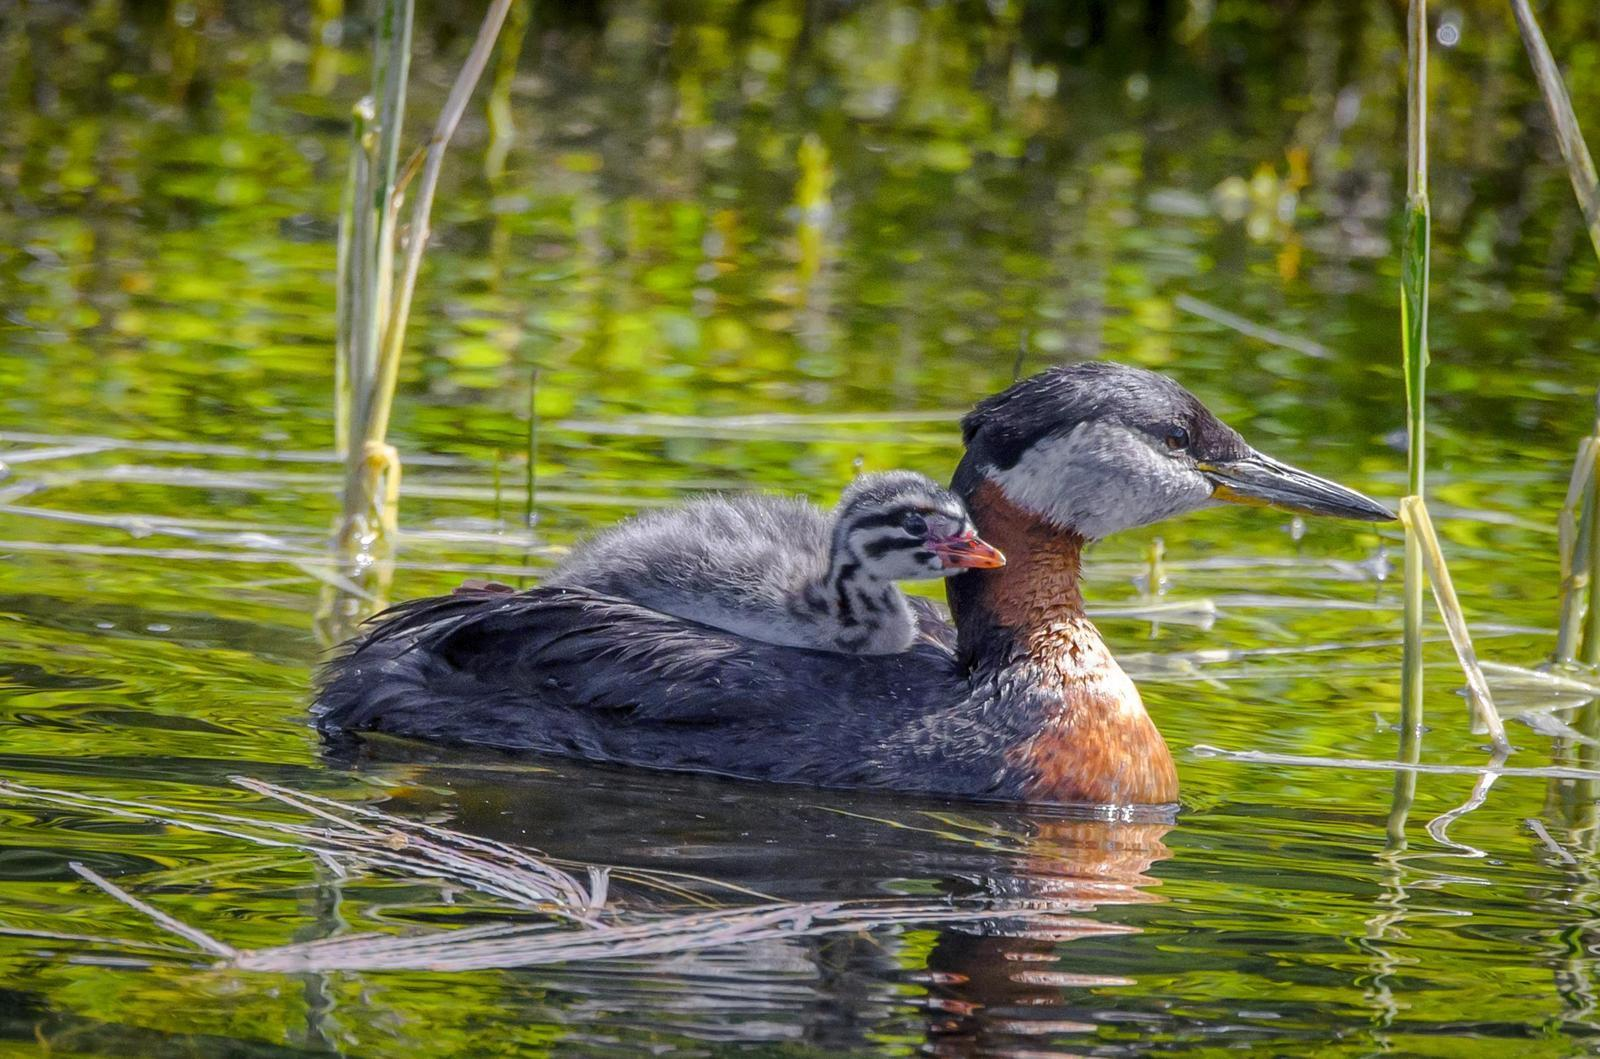 Red-necked Grebe Photo by Scott Yerges